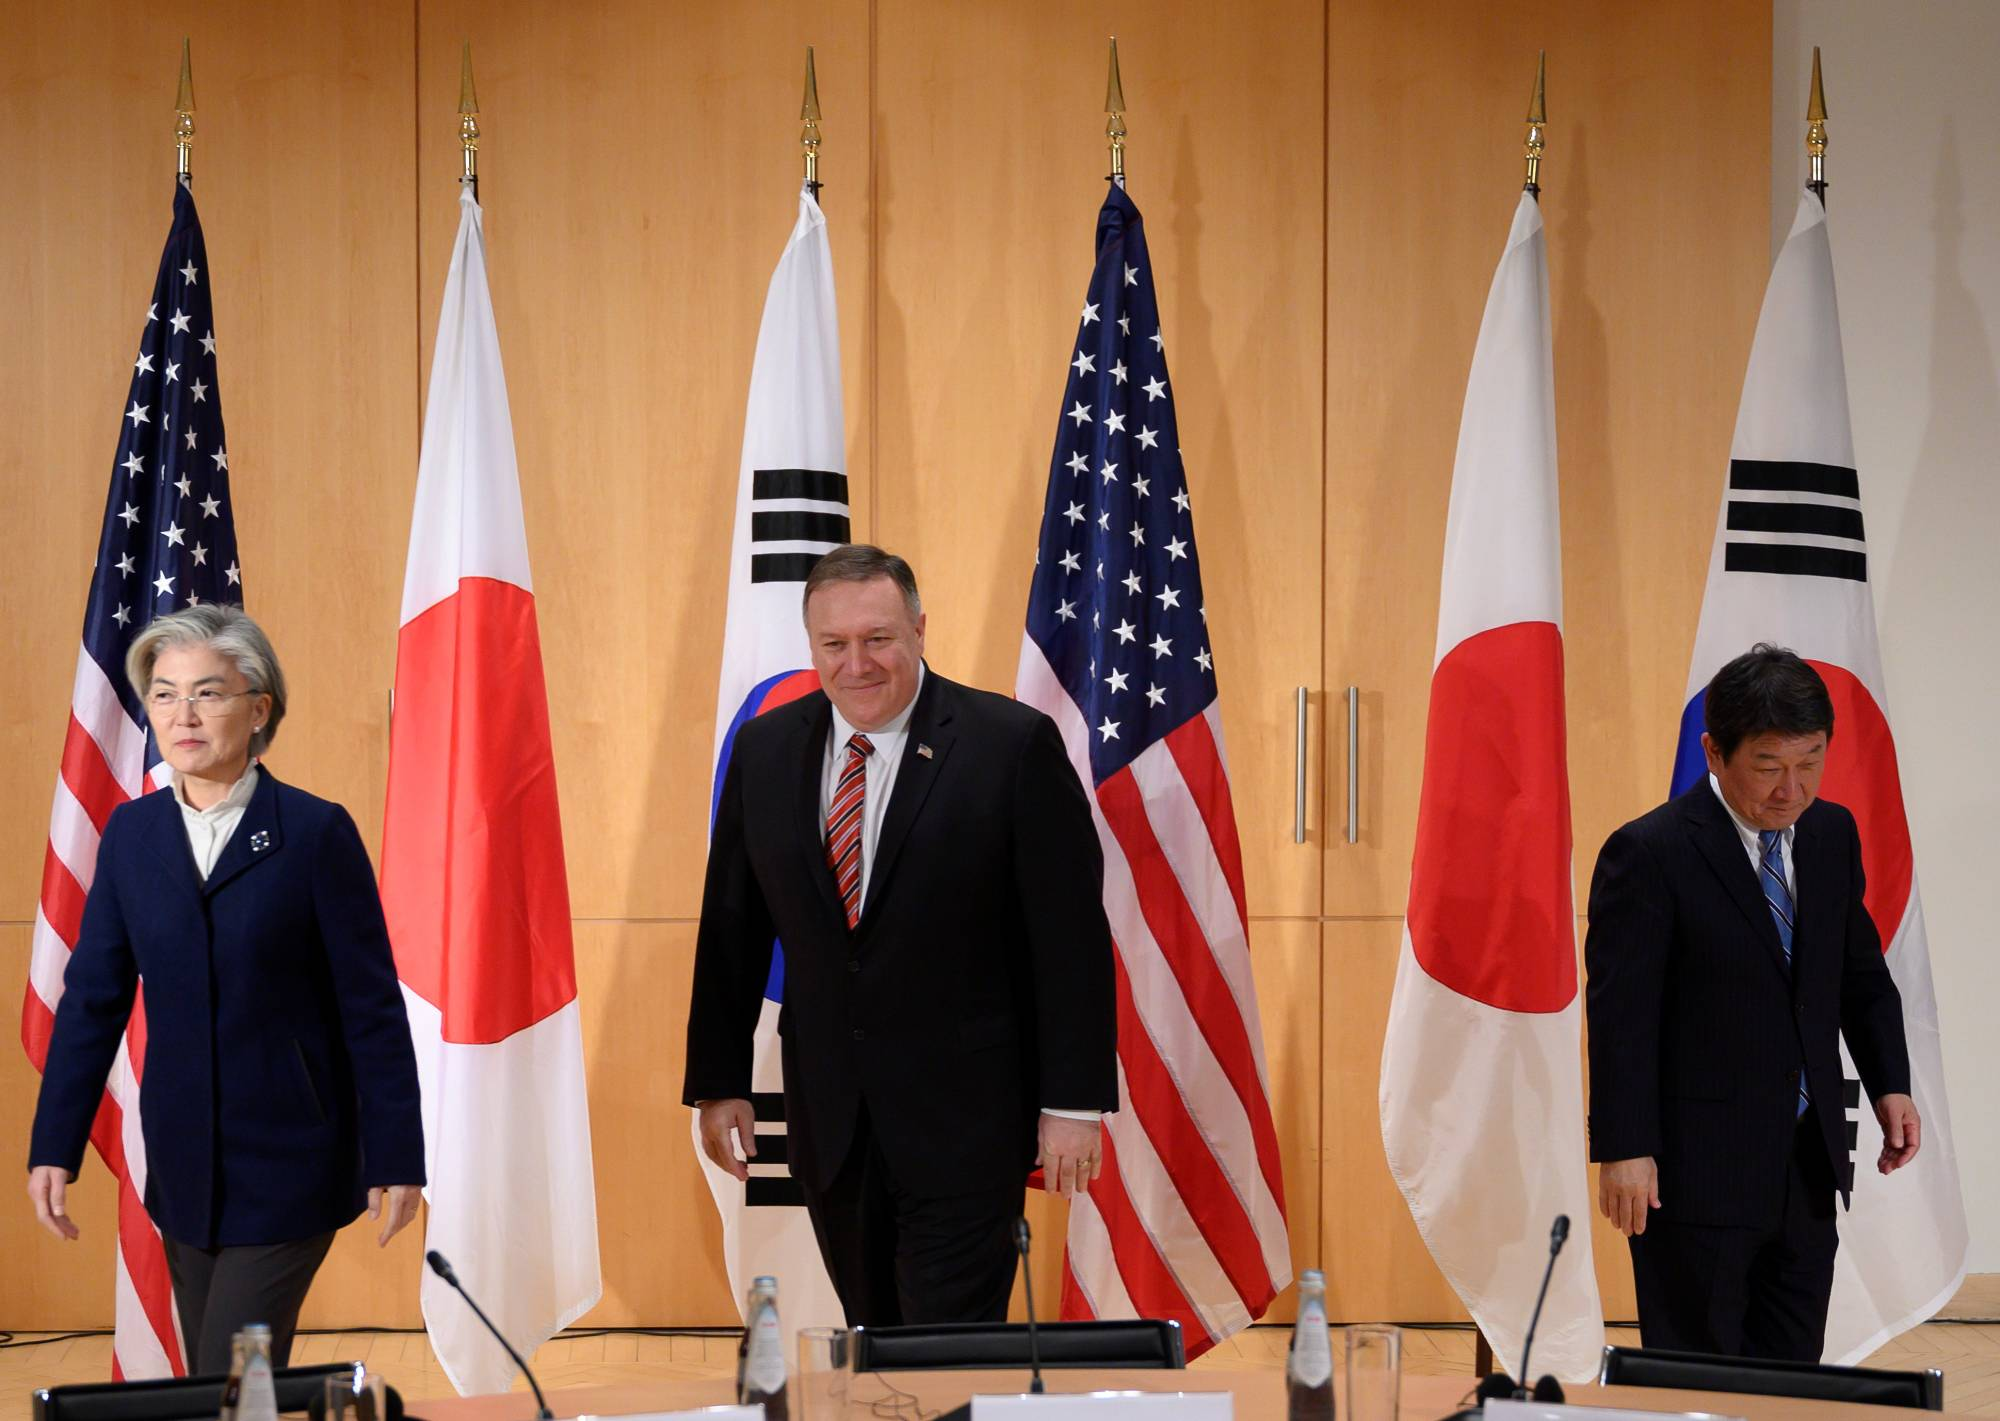 South Korean Foreign Minister Kang Kyung-wha (left), U.S. Secretary of State Mike Pompeo (center) and Japan's Foreign Minister Toshimitsu Motegi arrive for a trilateral meeting in Munich last February. | POOL / VIA REUTERS